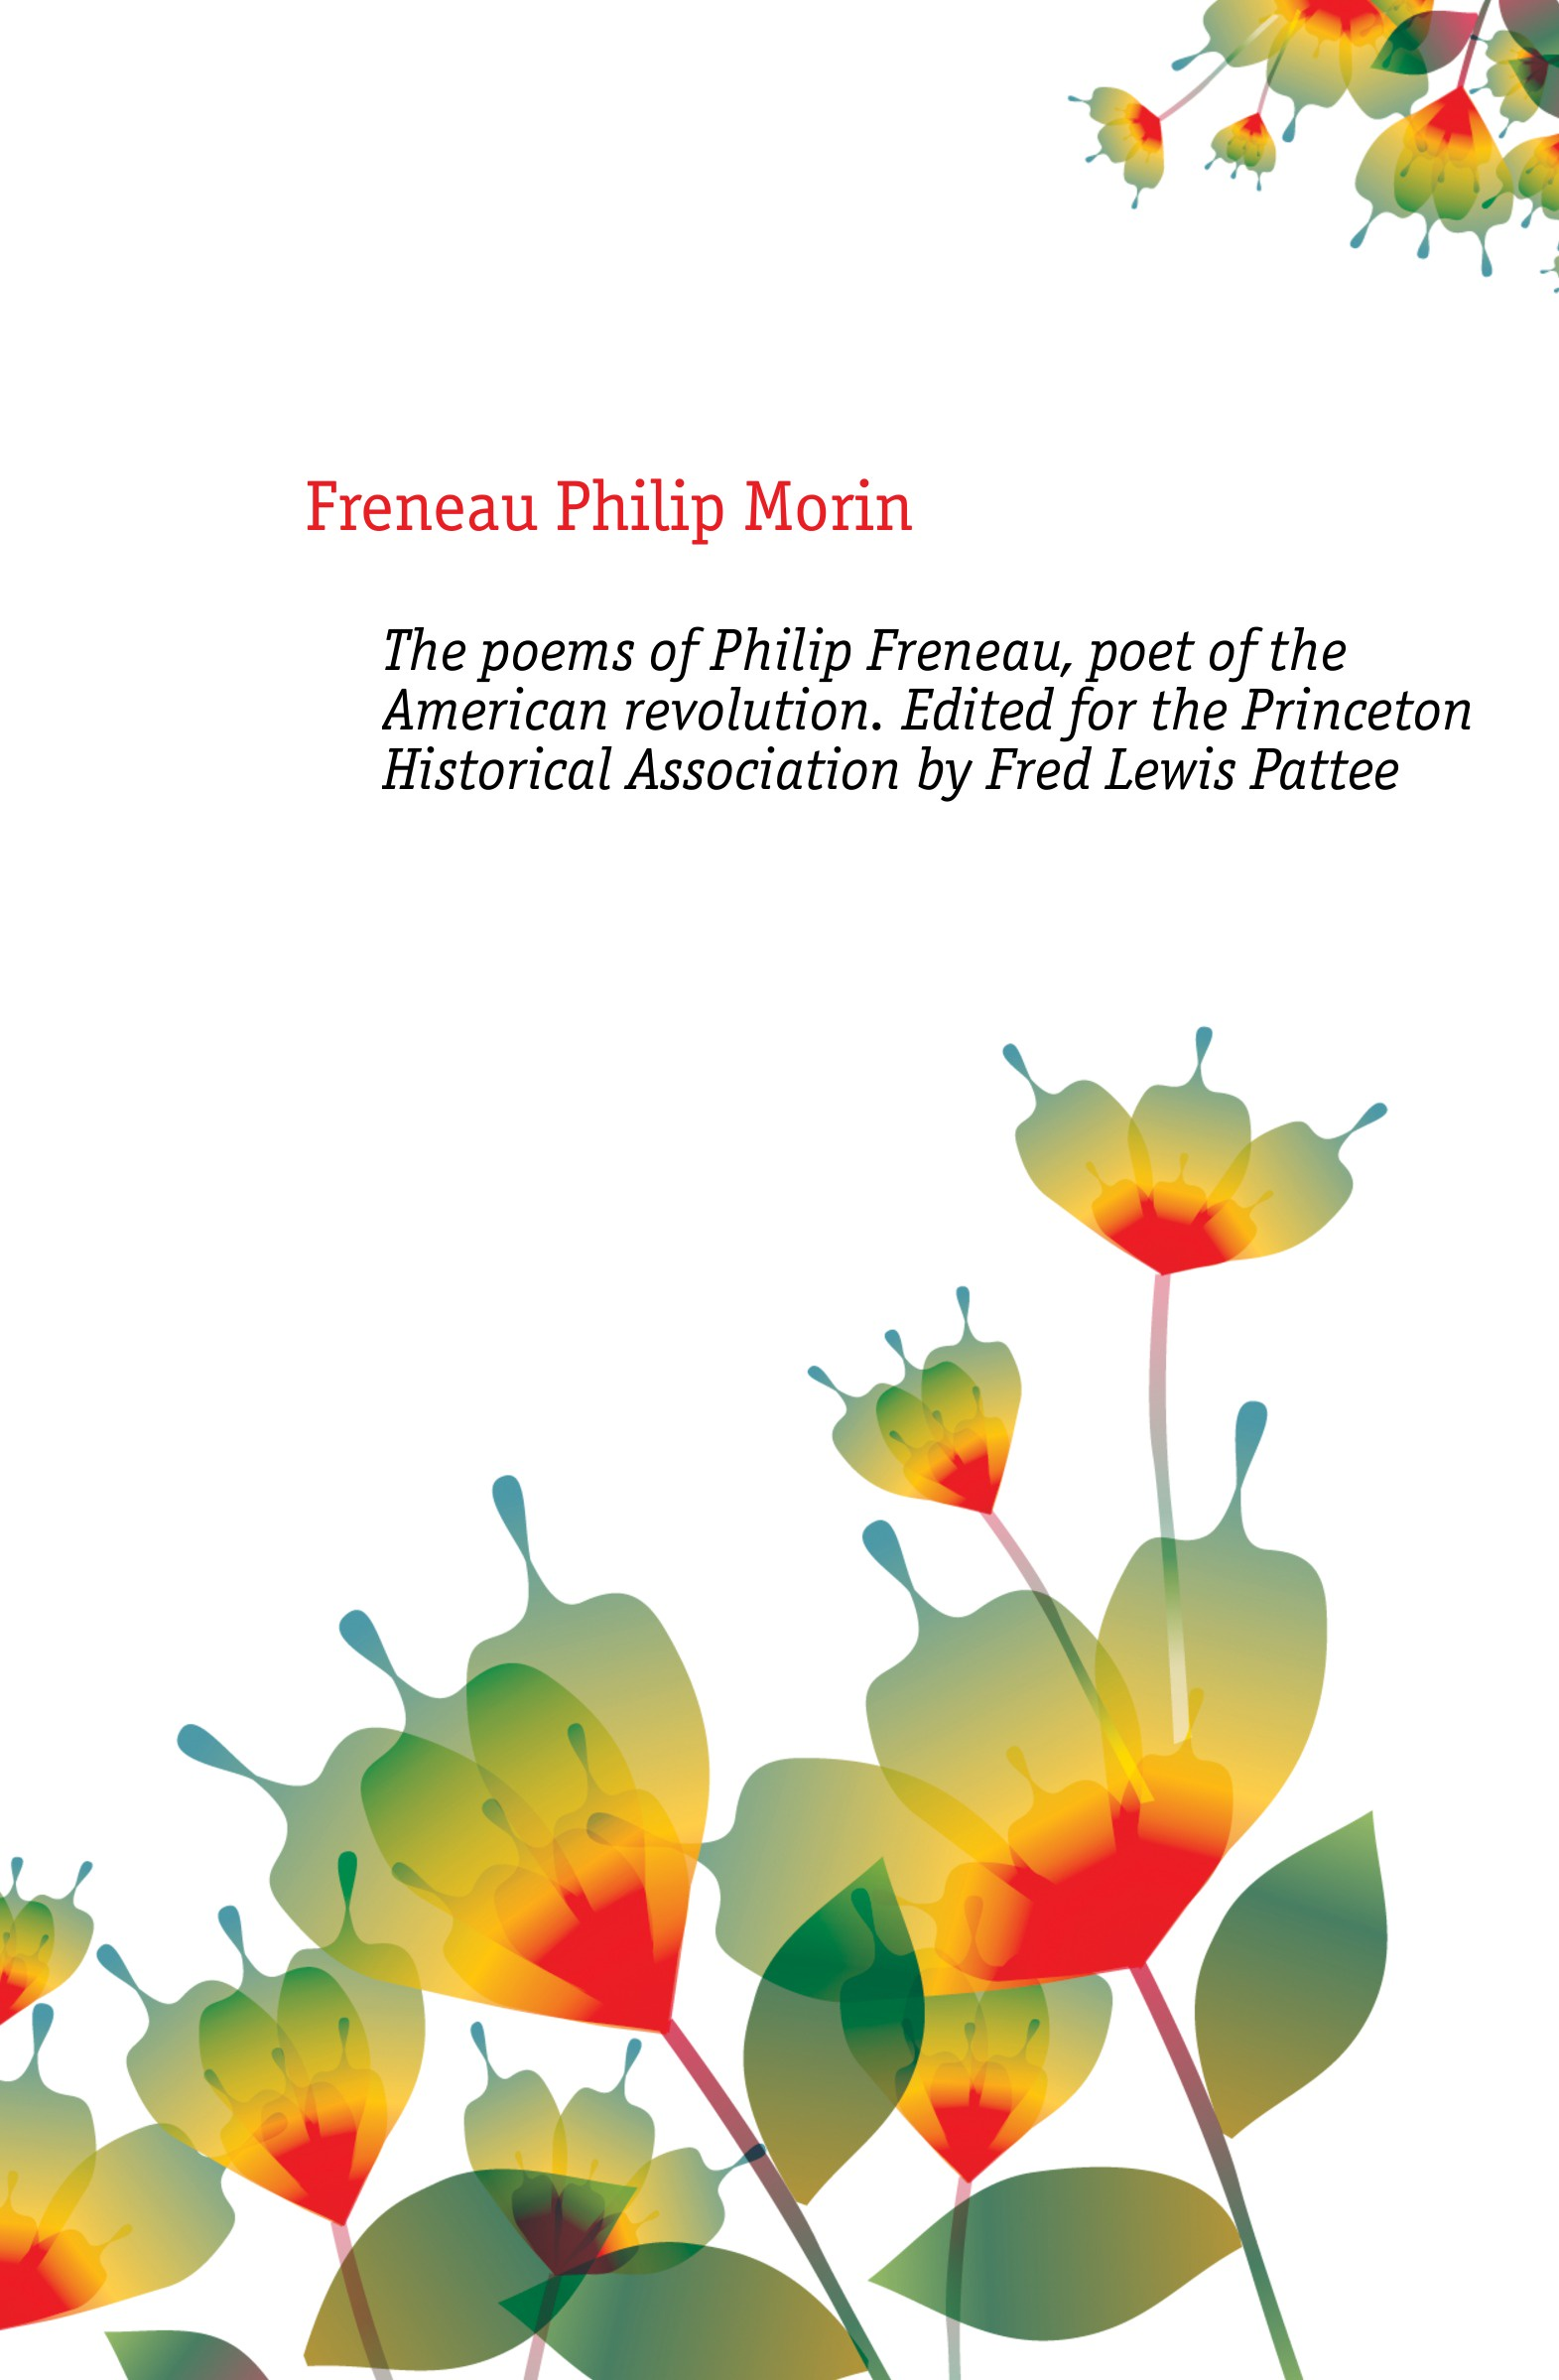 Freneau Philip Morin The poems of Philip Freneau, poet of the American revolution. Edited for the Princeton Historical Association by Fred Lewis Pattee freneau philip morin the poems of philip freneau poet of the american revolution volume 1 of 3